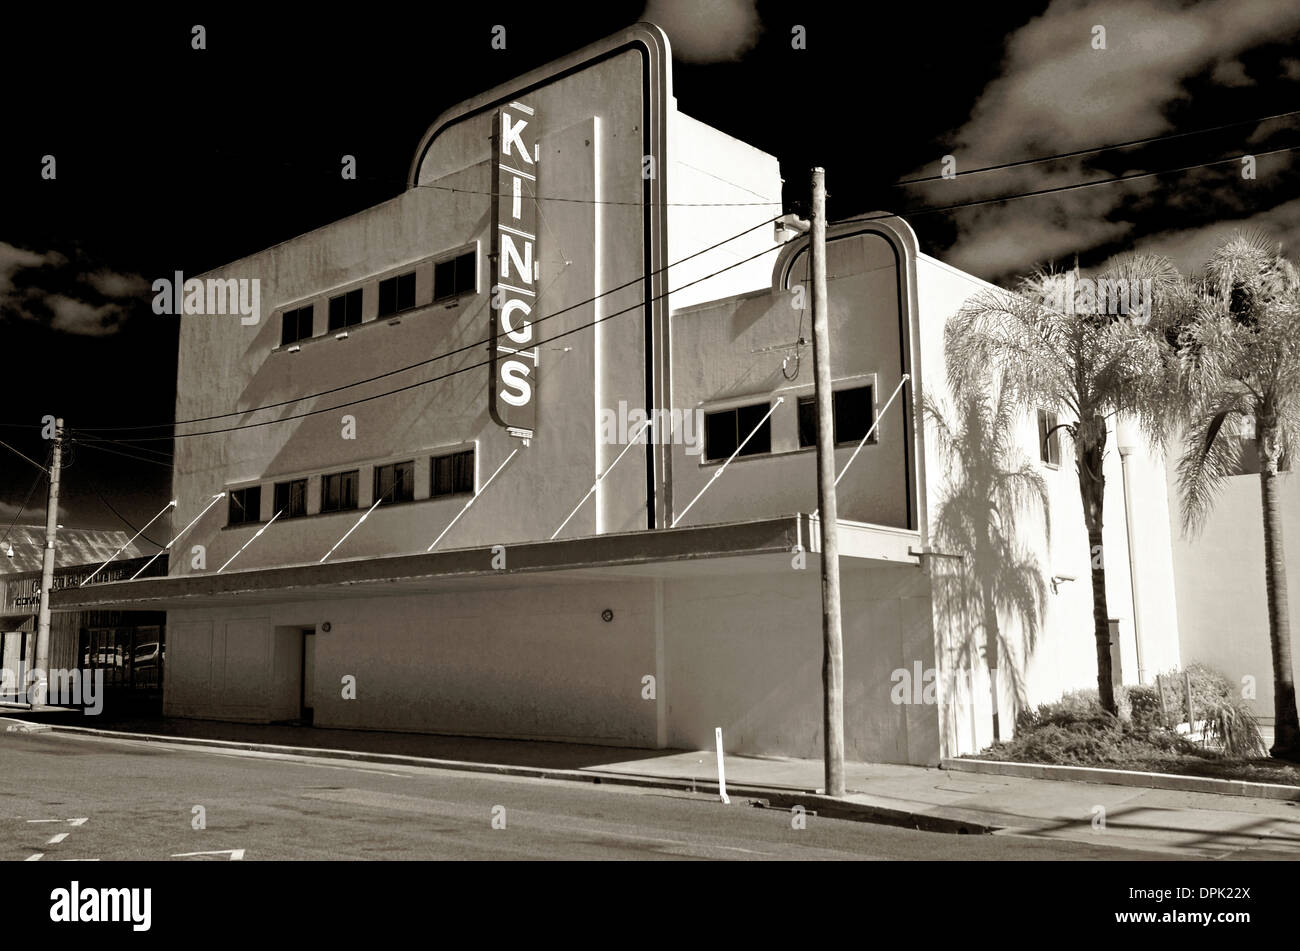 infra red  black and white photograph of the old Kings cinema in warwick, queensland, australia - Stock Image